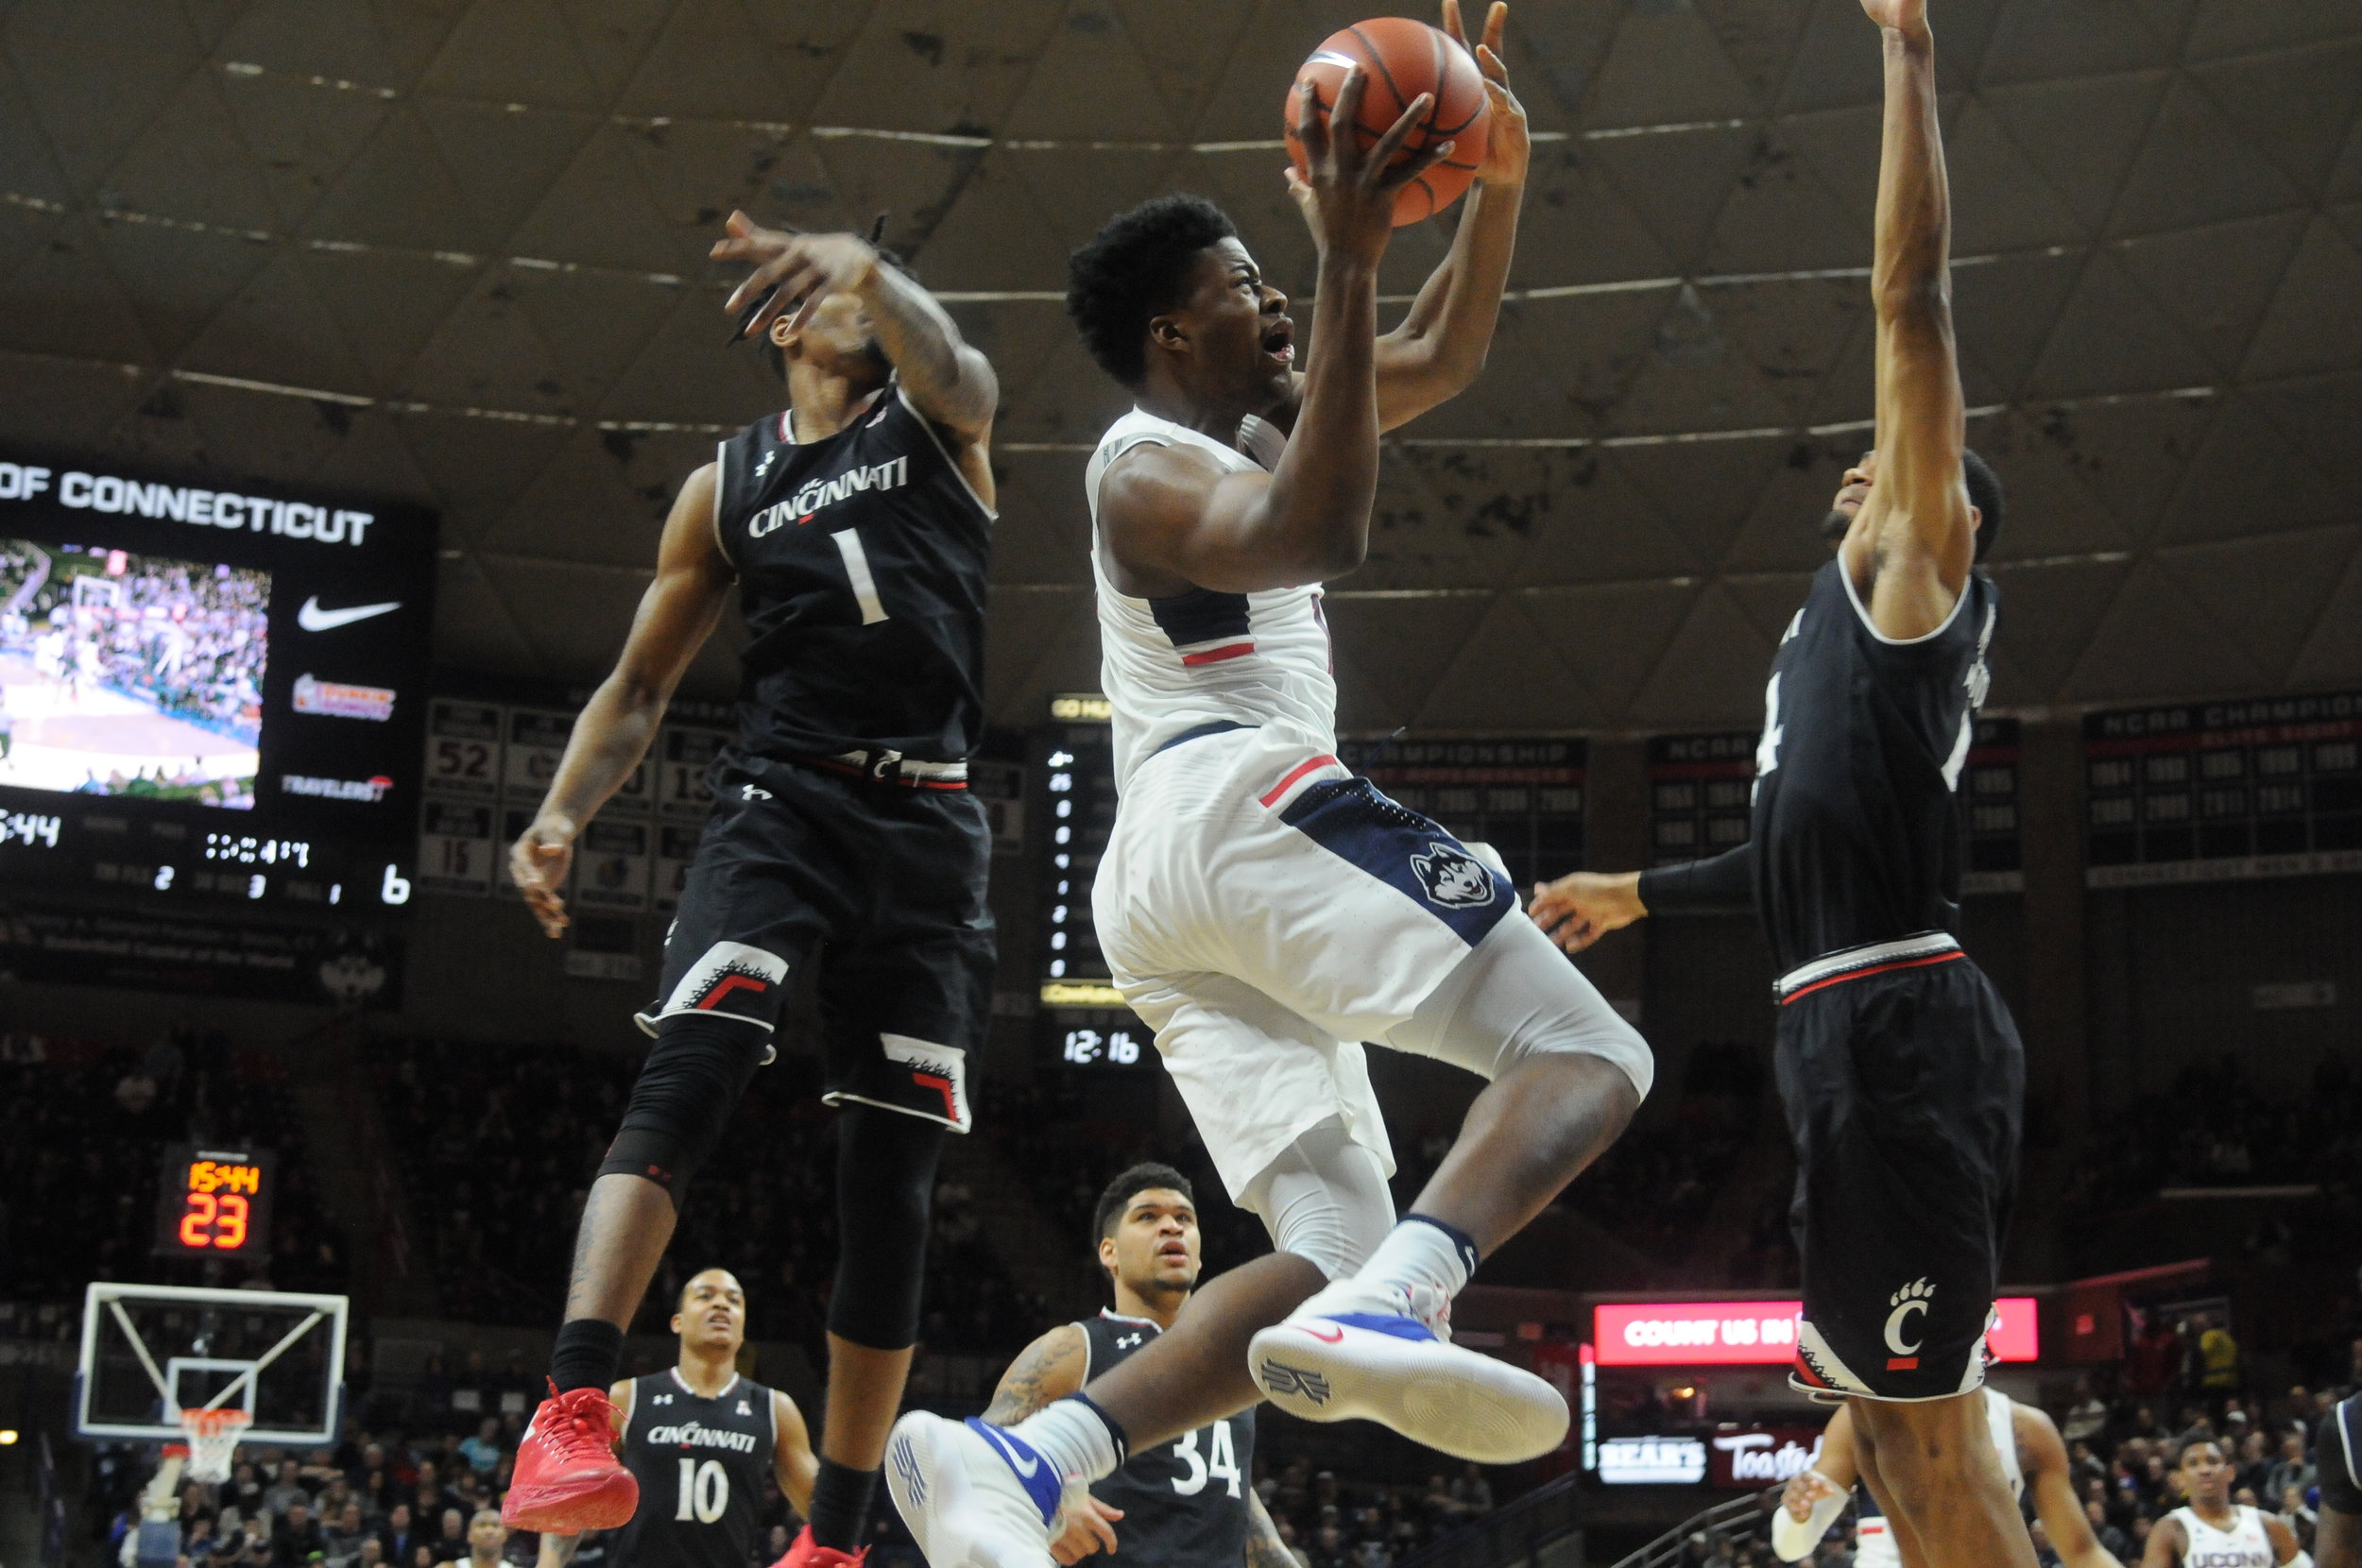 Steve Enoch (picture in white above) is one of the UConn basketball players who have recently announced their intentions to transfer. (Amar Batra/The Daily Campus)